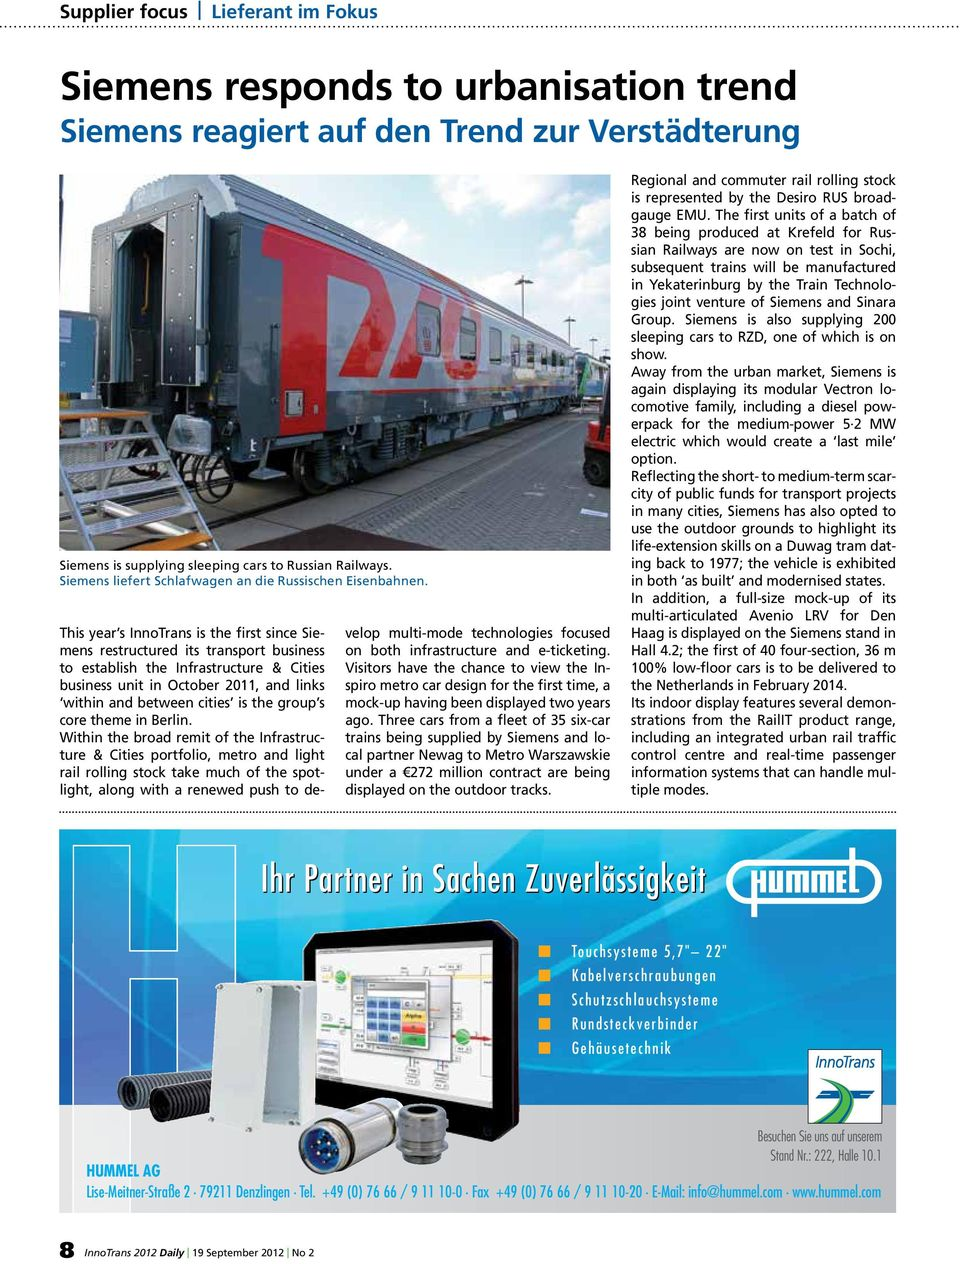 This year s InnoTrans is the first since Siemens restructured its transport business to establish the Infrastructure & Cities business unit in October 2011, and links within and between cities is the